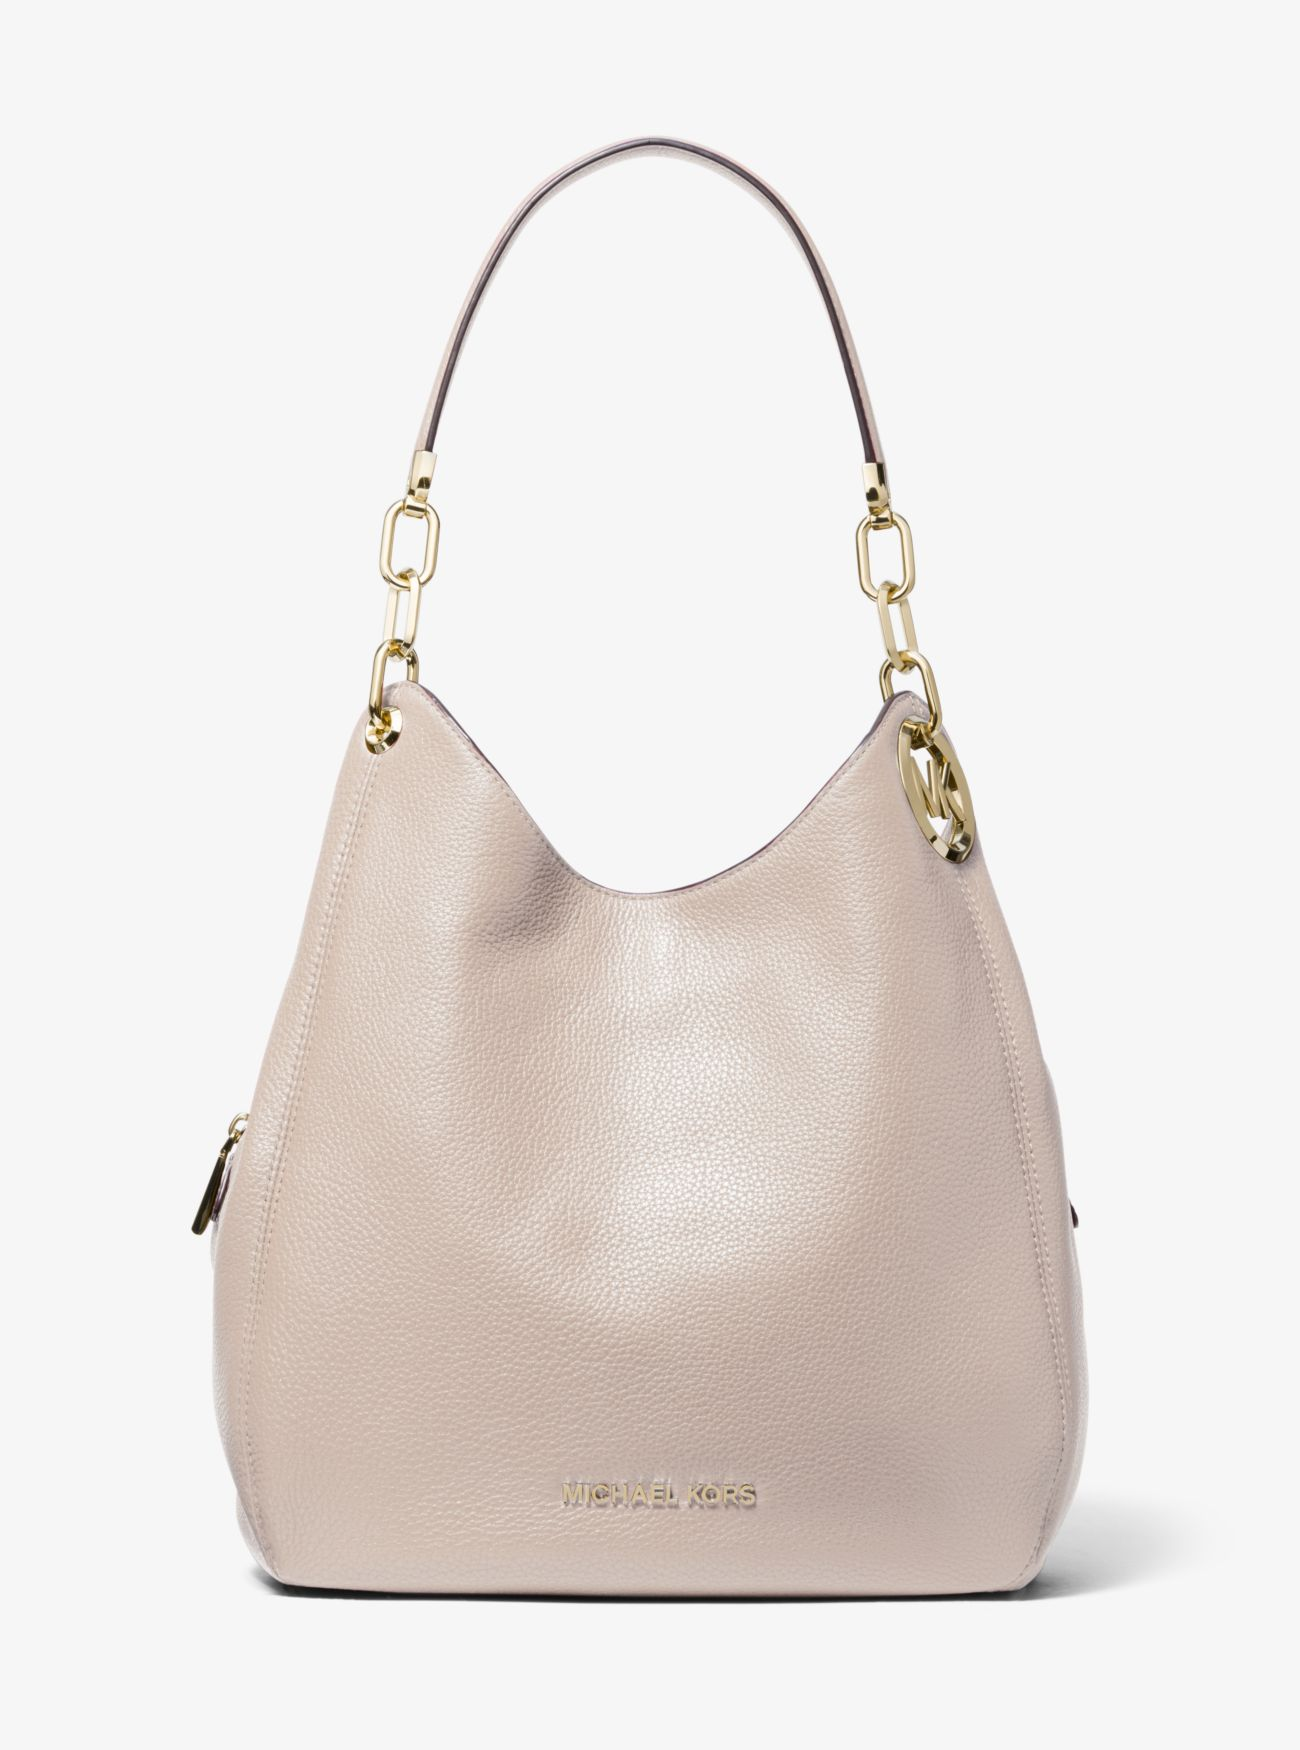 Lillie Large Pebbled Leather Shoulder Bag